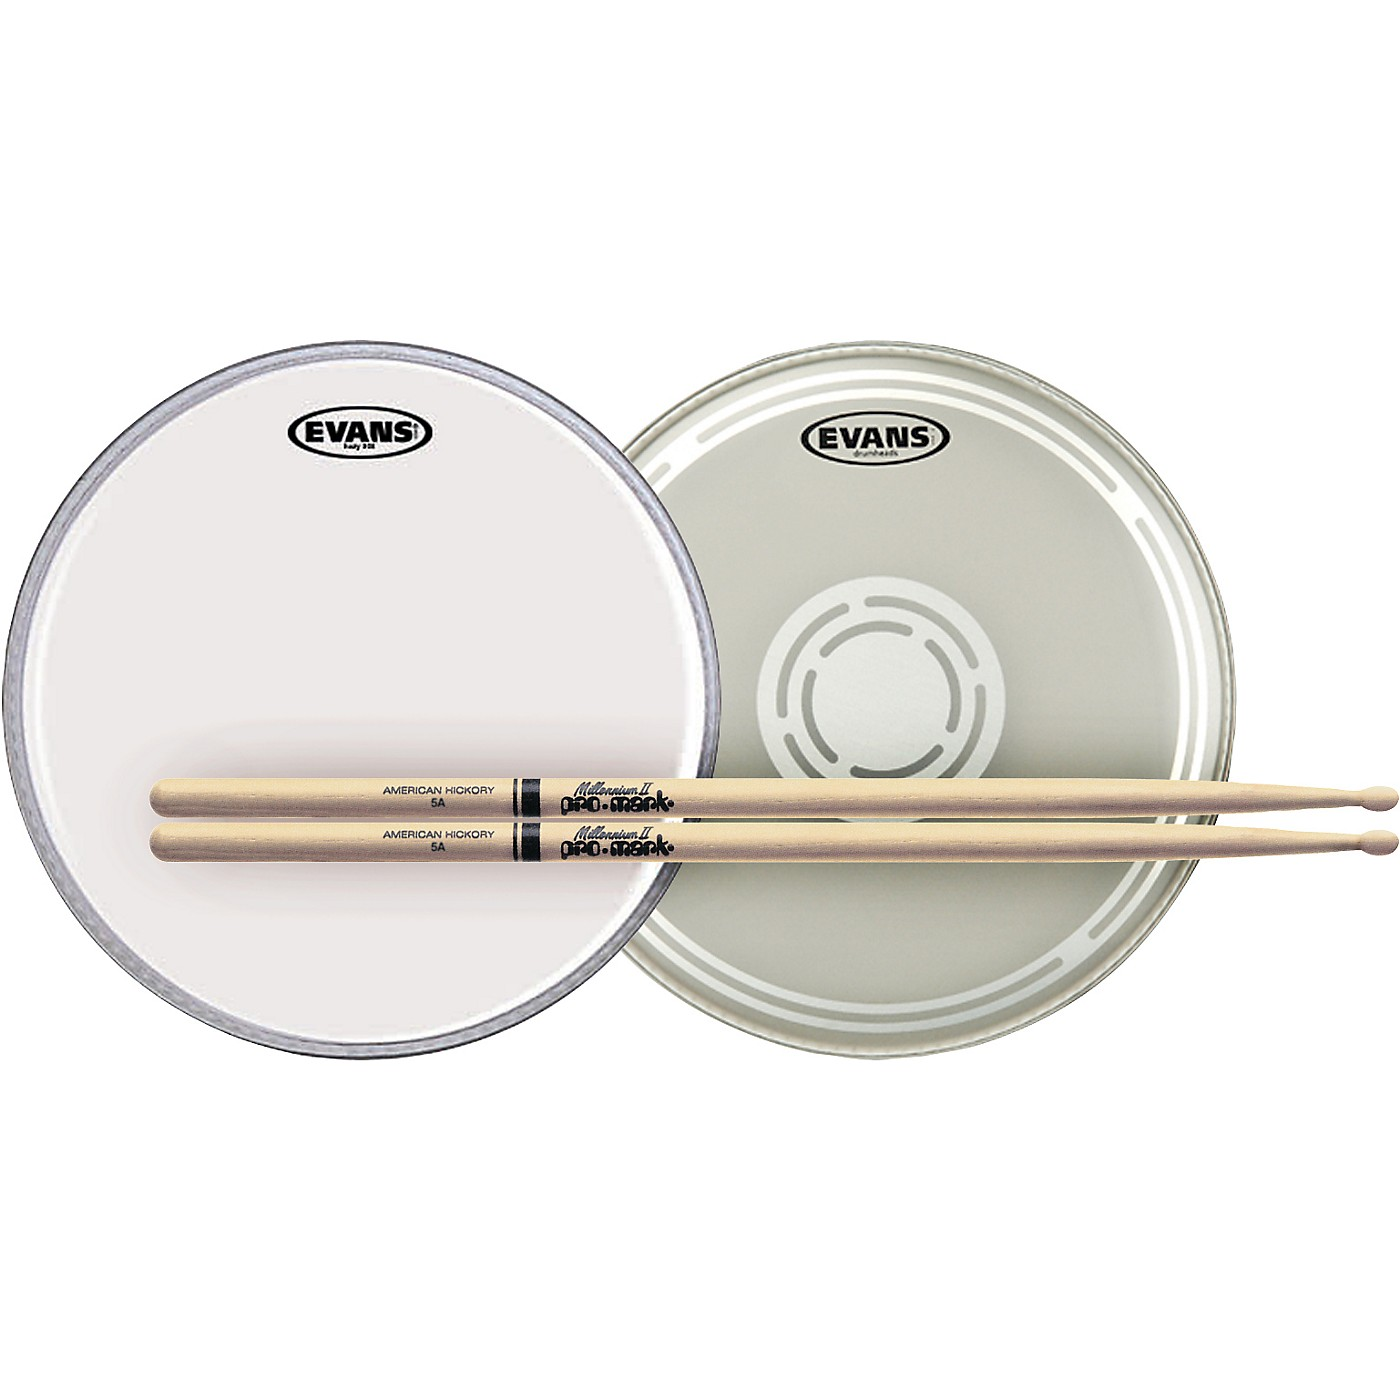 Evans EC Reverse Dot Snare Batter and Snare Side Head Pack With Free Pair of Promark Sticks thumbnail